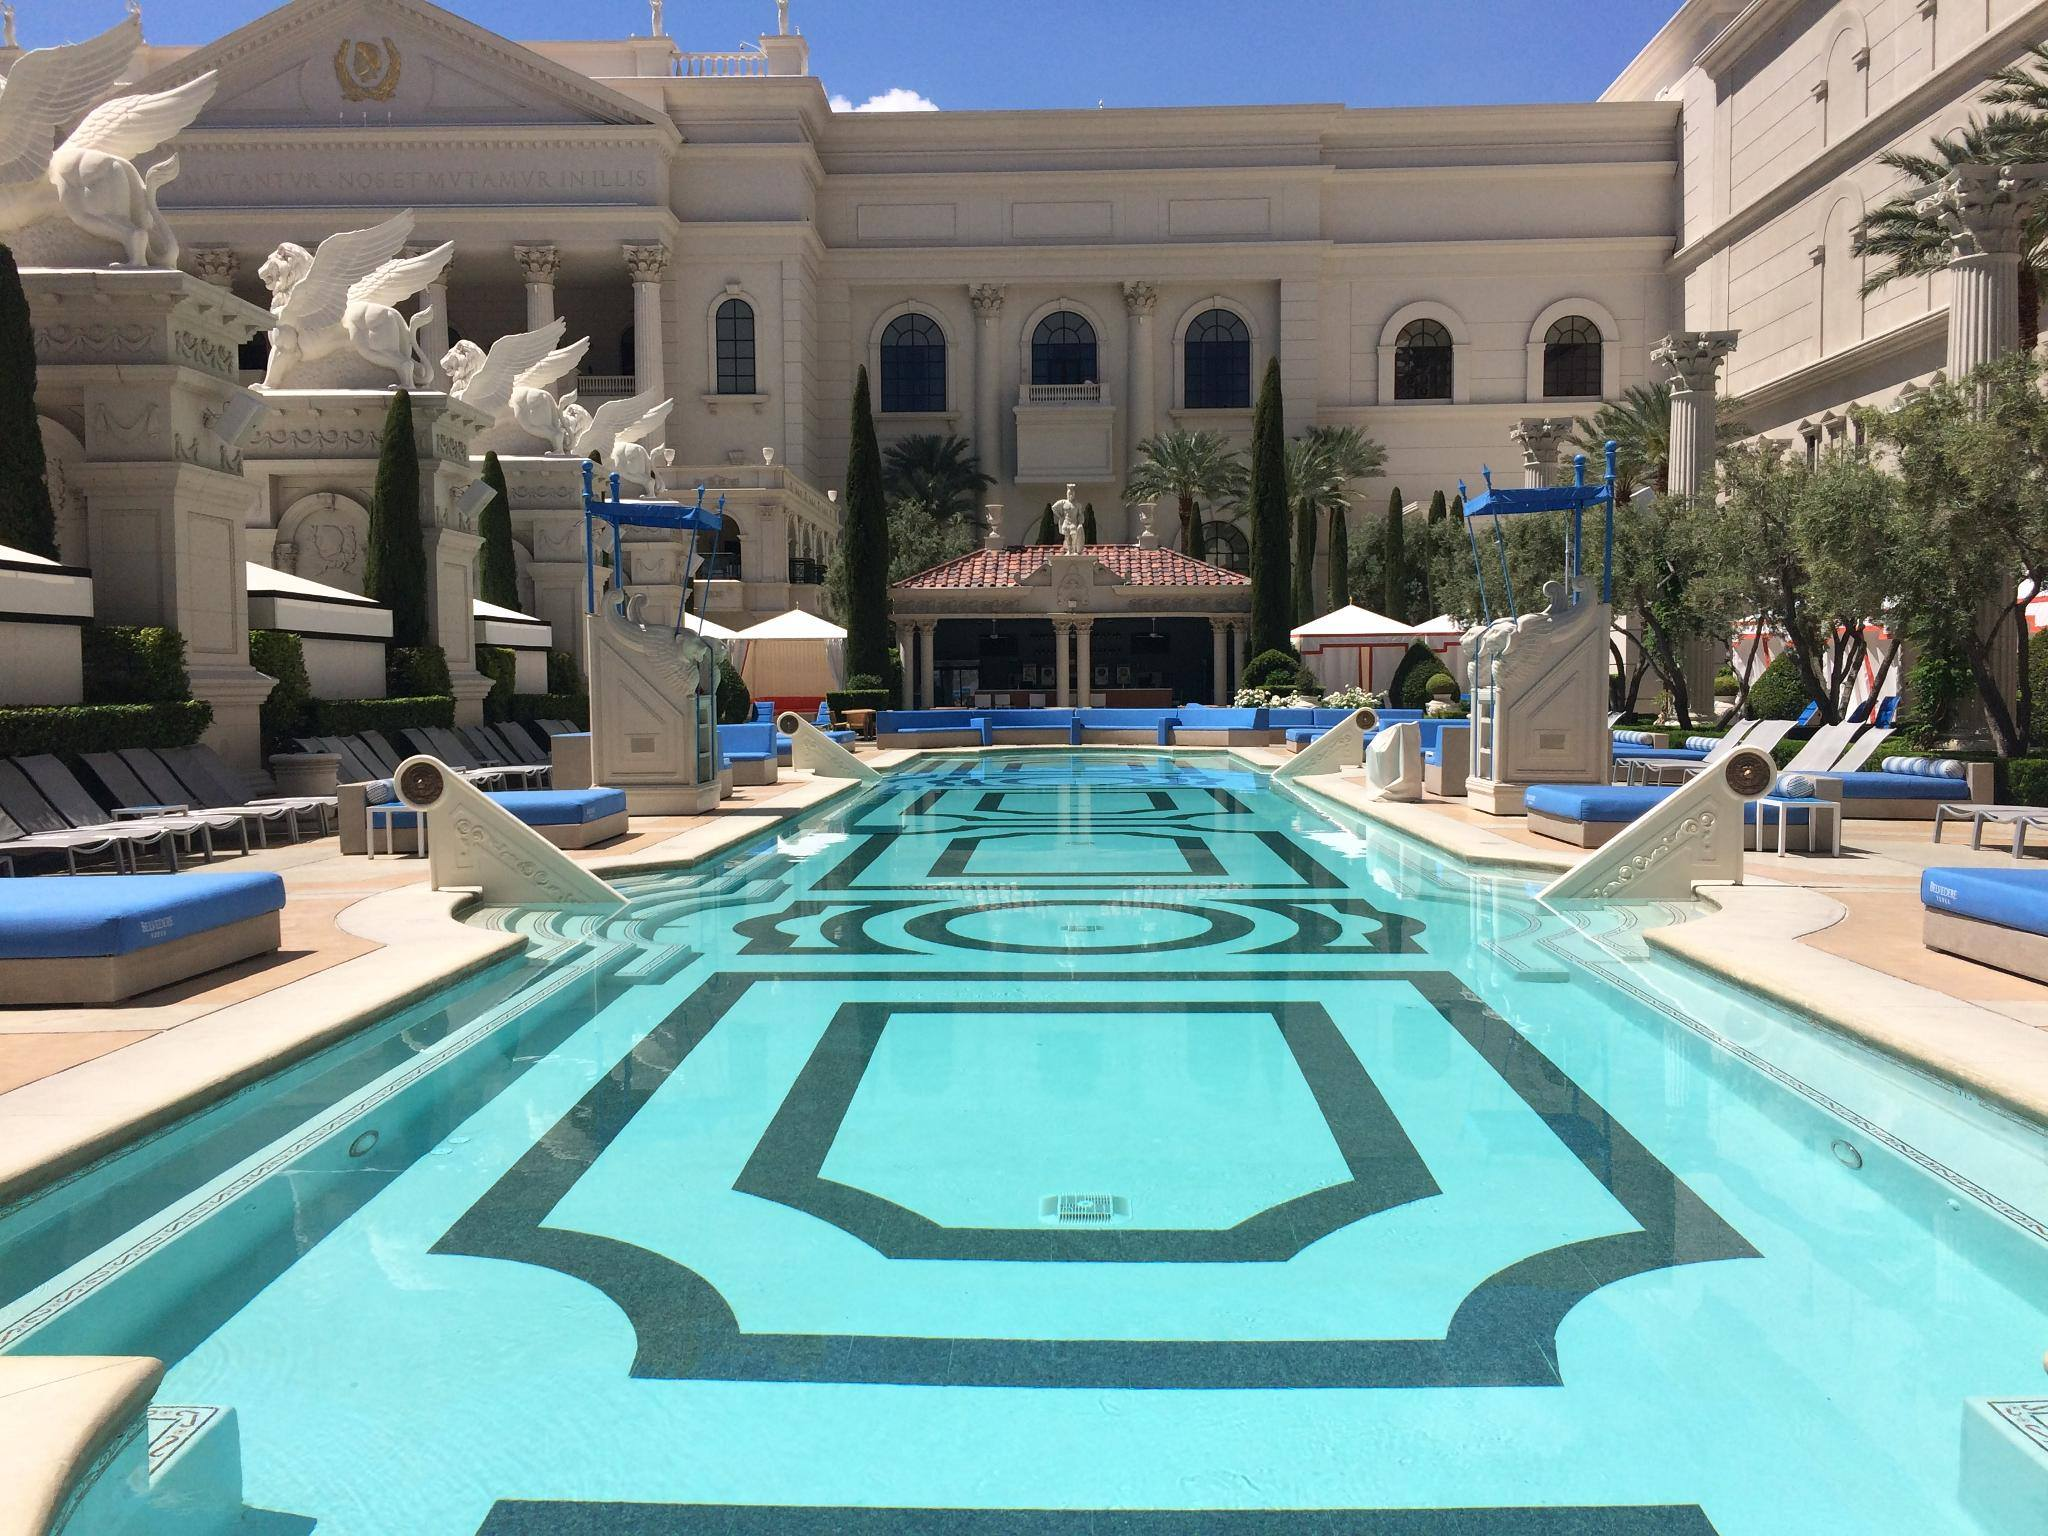 VENUS European Pool photo courtesy of Caesars.